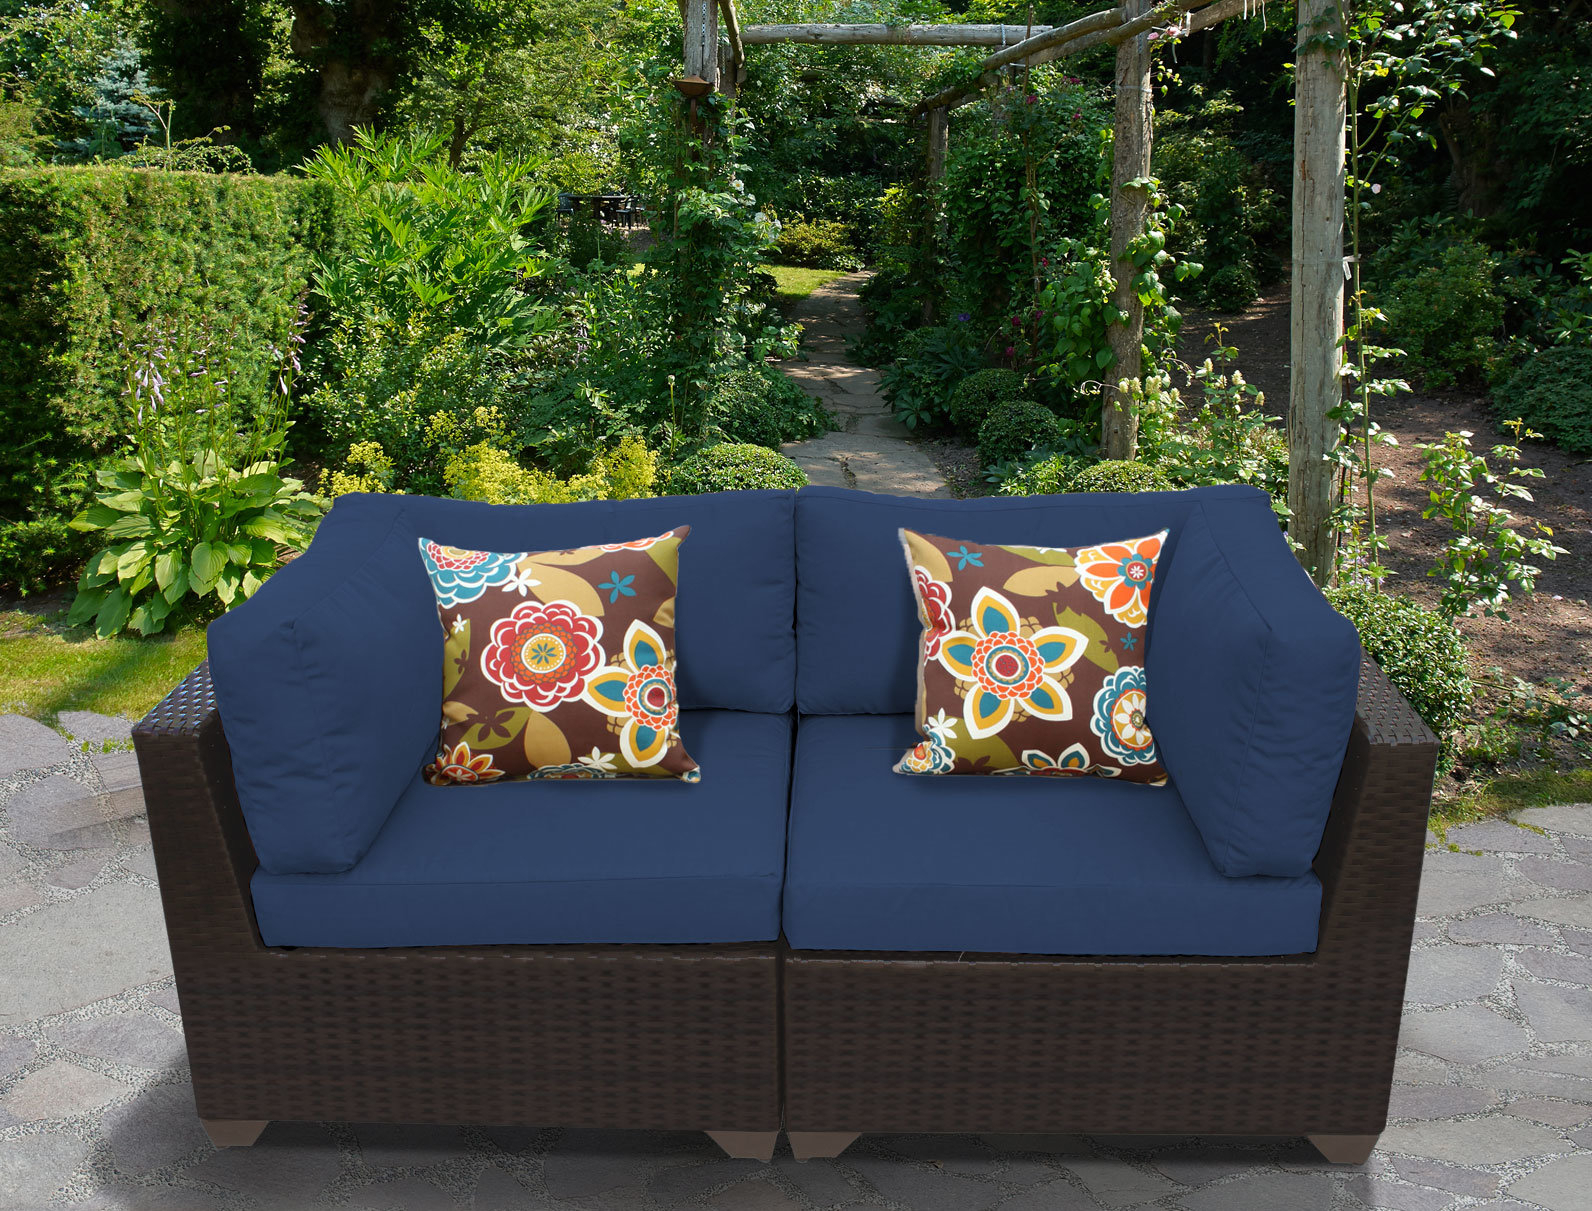 Camak Patio Loveseats With Cushions Intended For Best And Newest Camak Patio Loveseat With Cushions (View 2 of 20)